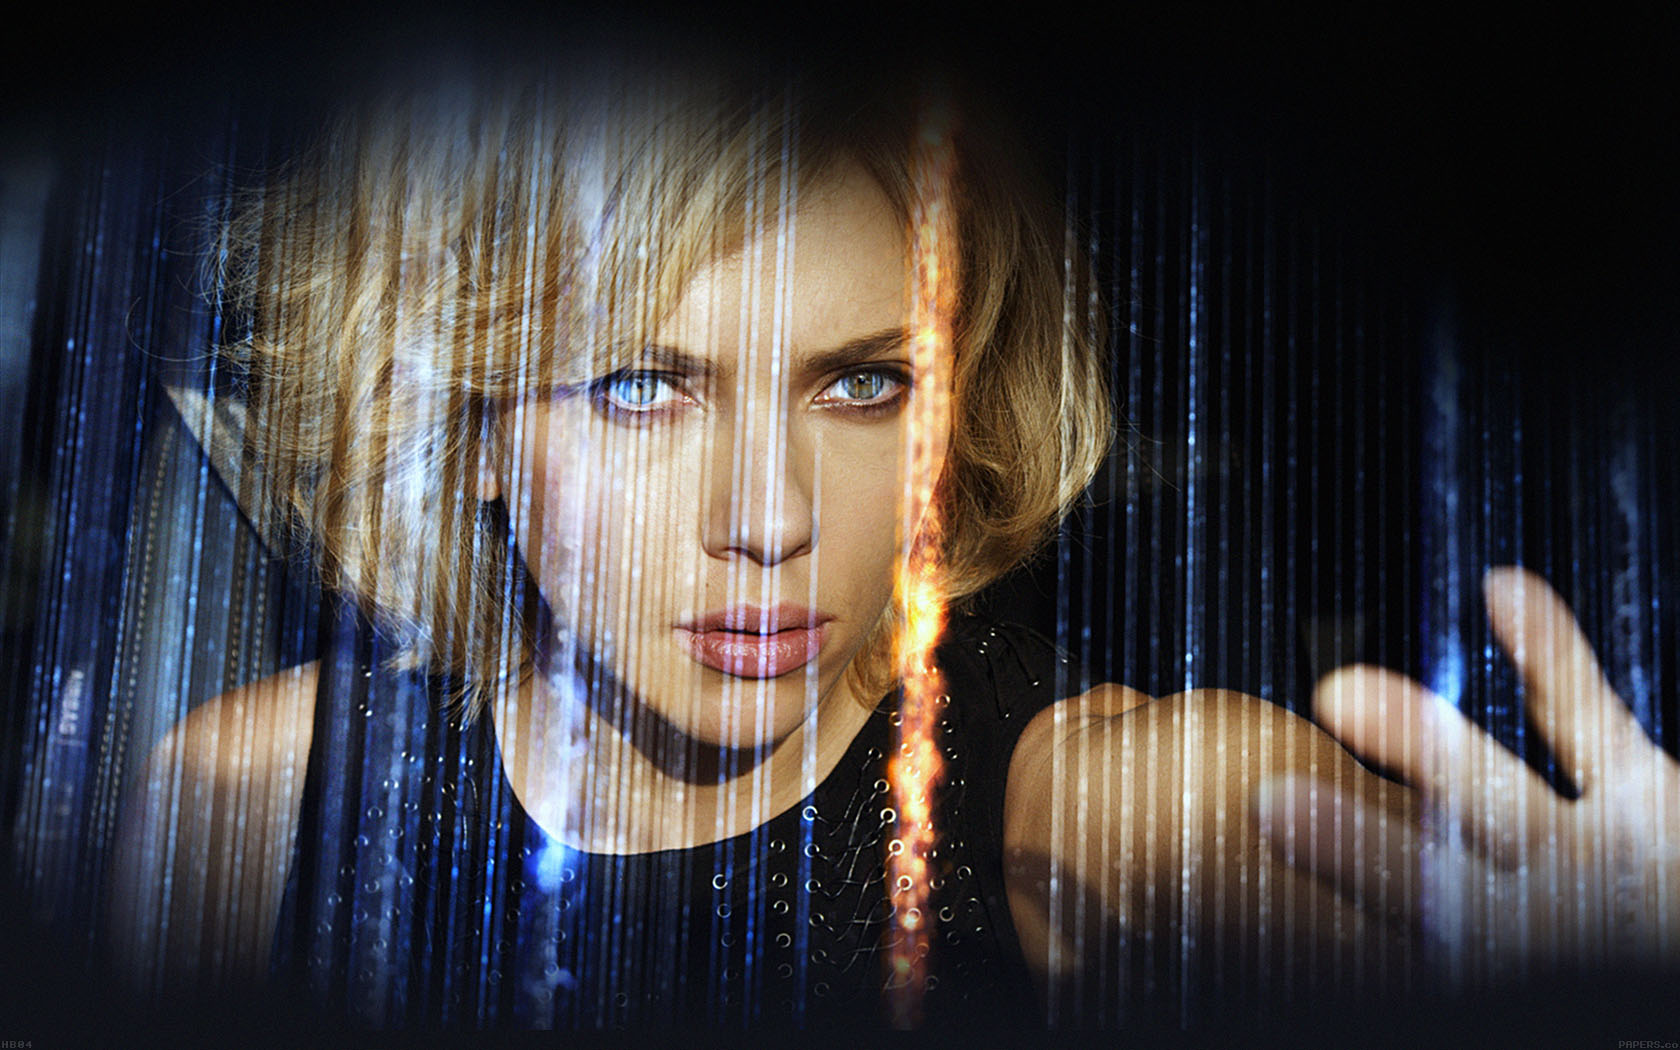 Summer Wallpapers For Iphone 7 Hb04 Wallpaper Lucy Film Scarlett Johansson Sexy Face